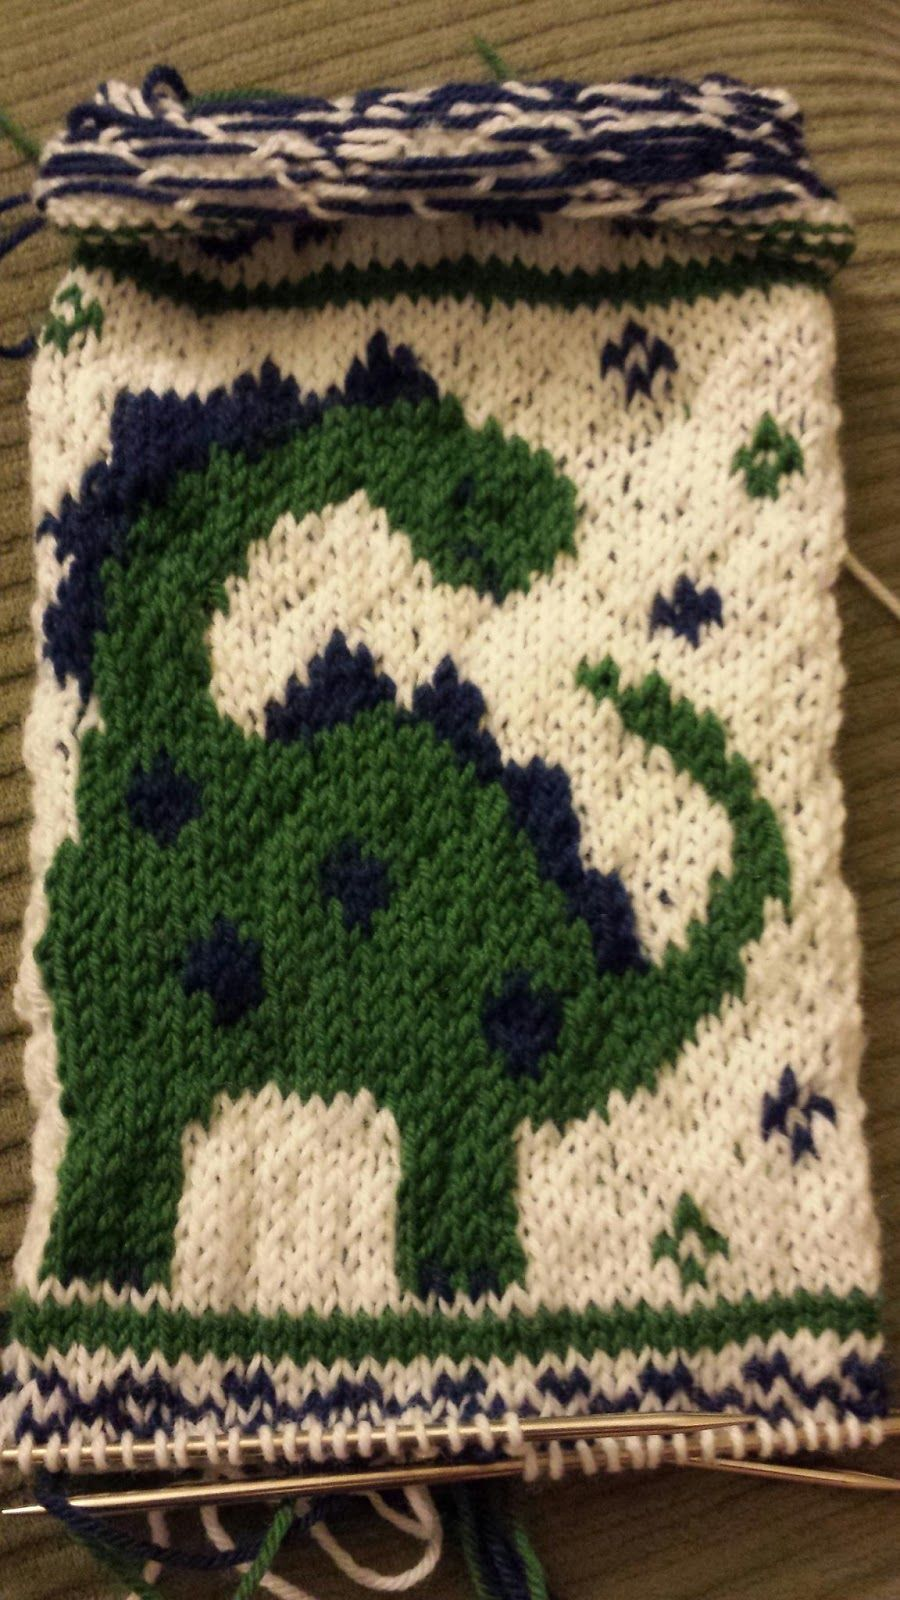 Chemknits dinosaur knitting chart chart is available i just i love the dinosaur i incorporated into my baby christmas stocking design and i thought it would be worth sharing this dinosaur as a st bankloansurffo Choice Image